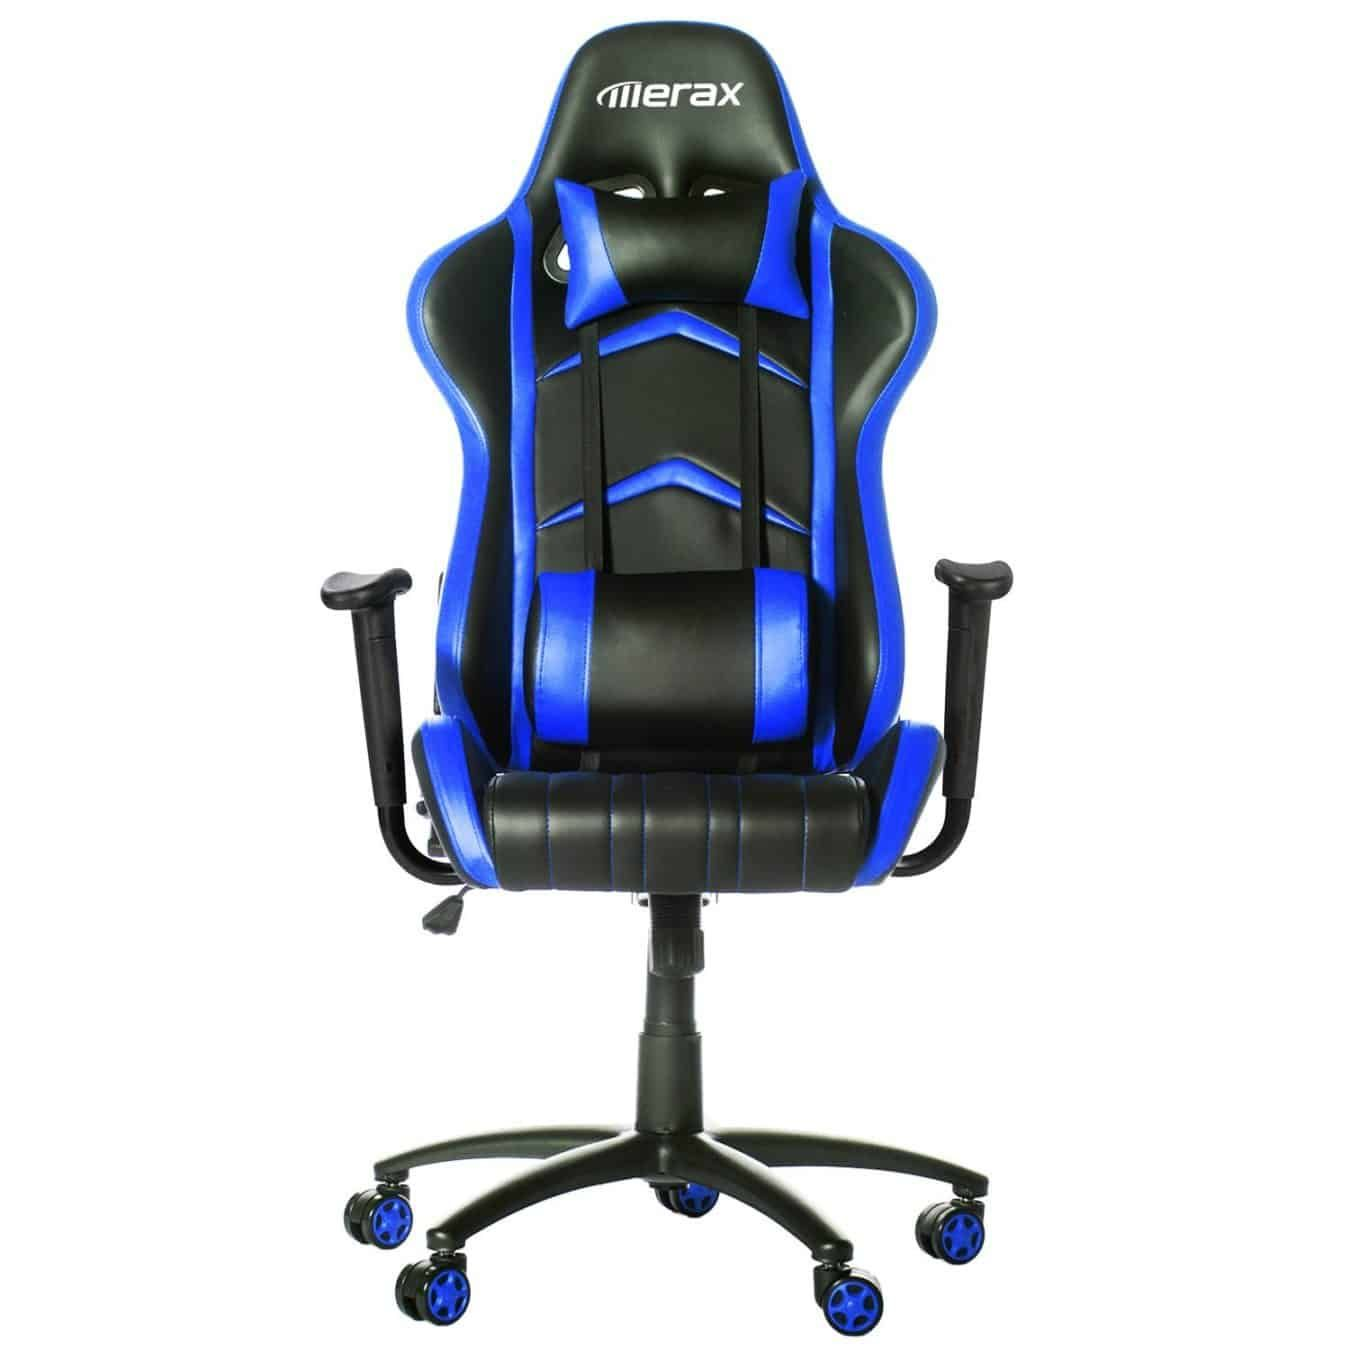 Lexington furniture chair fabric gold additionally ikea swivel chairs - Merax Racing Style Pu Leather Office Chair 180 Degree Back Adjustment Swivel Computer Gaming Chair Executive